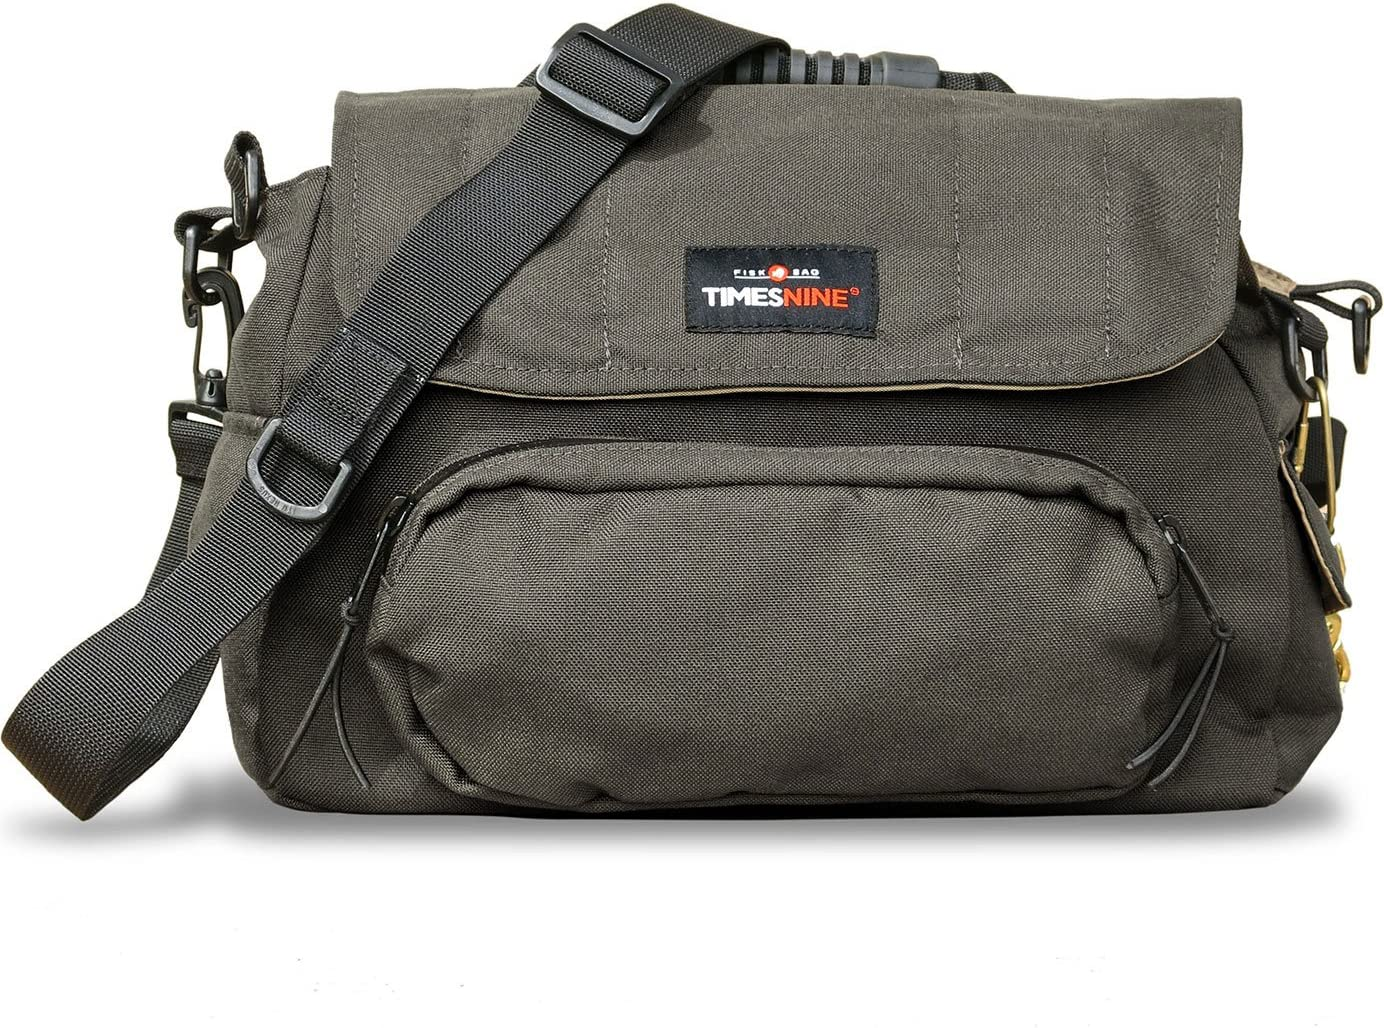 TimesNine Fisk Bag, Fly Fishing Bag with Rod Holder